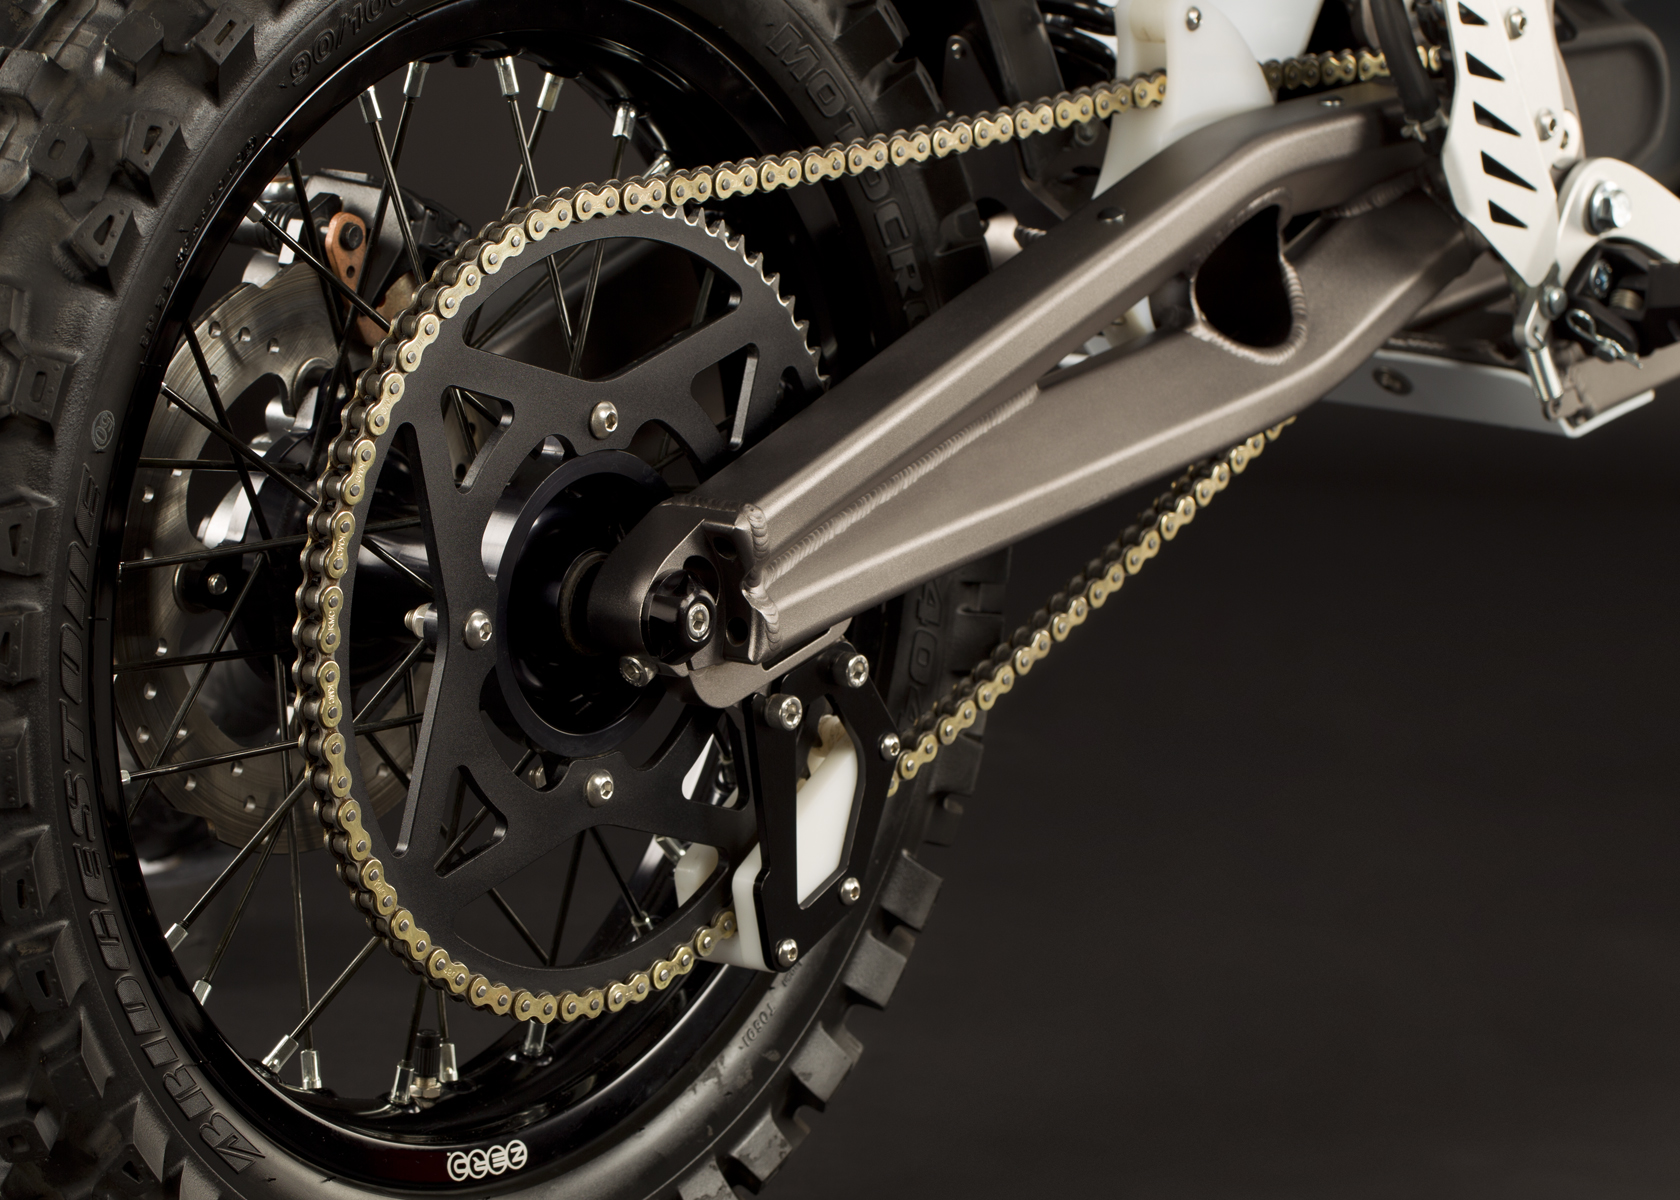 '.2011 Zero X Electric Motorcycle: Rear tire / Rear shock / Swingarm.'